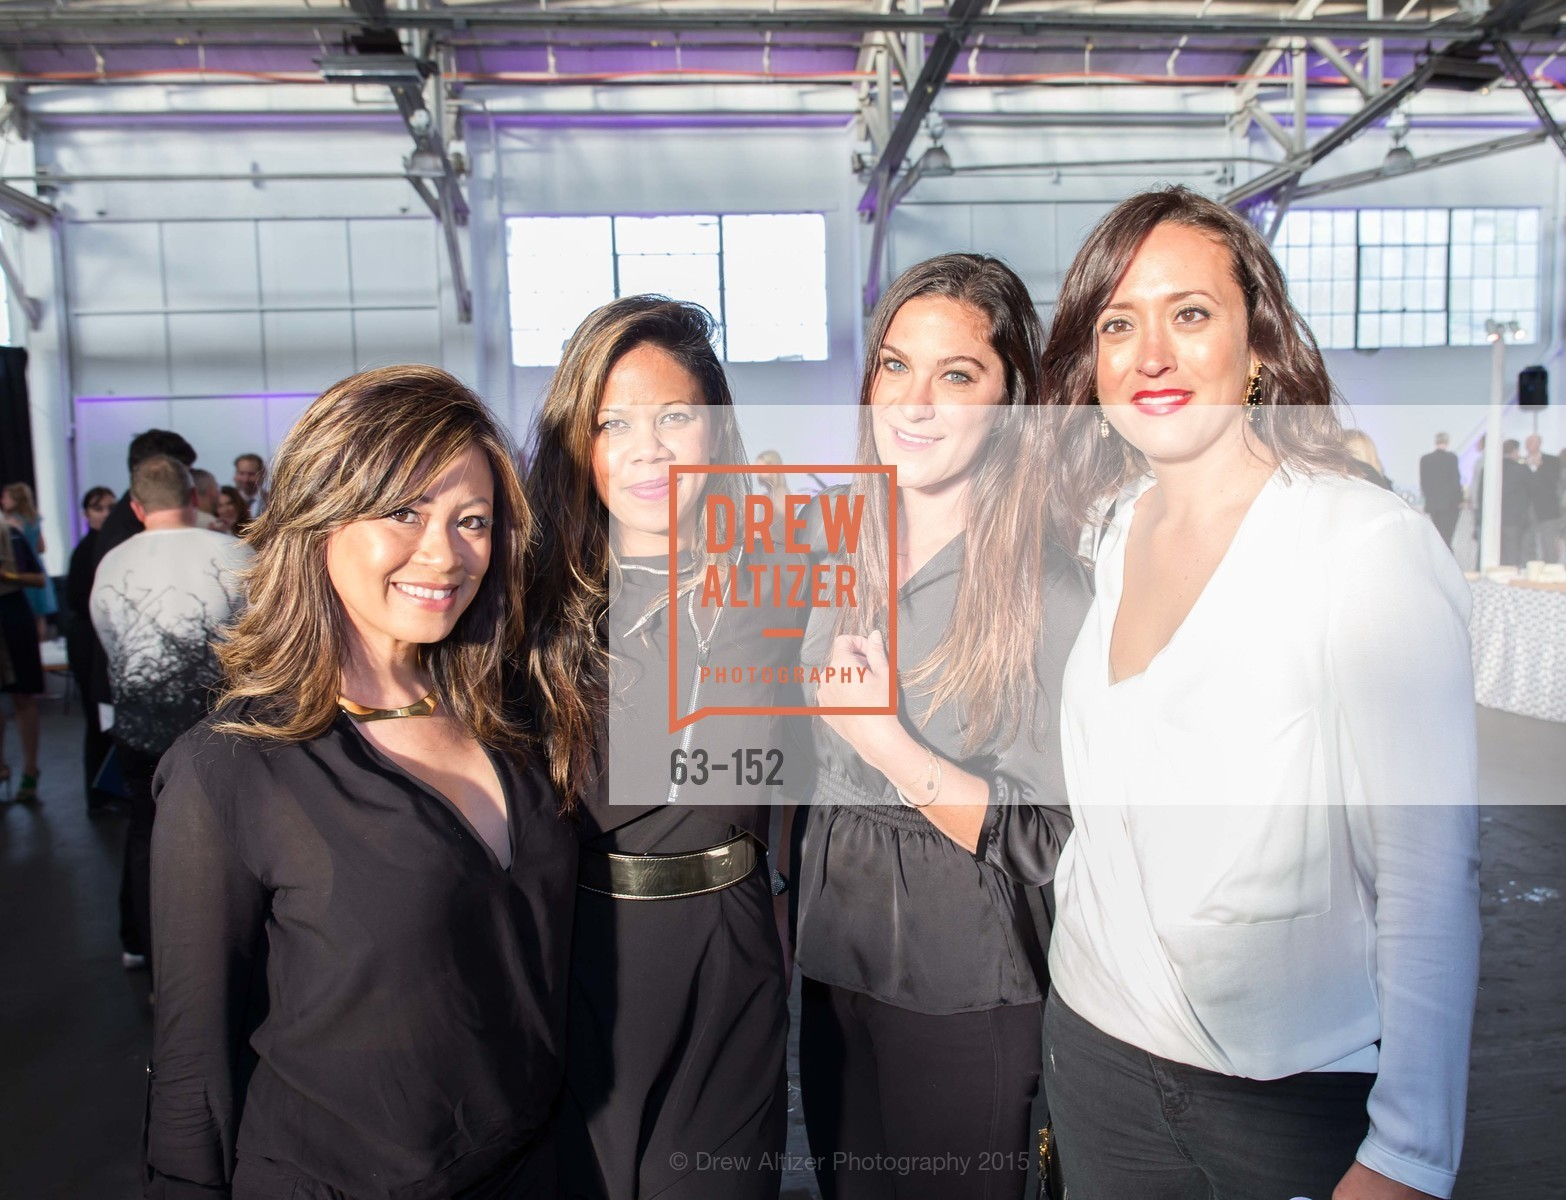 Denise Tran, Nishika DeRosairo, Jennifer Brennan, Marisa Dombroski, Headlands Center for the Arts Benefit Auction, Fort Mason Festival, Pavilon, June 2nd, 2015,Drew Altizer, Drew Altizer Photography, full-service agency, private events, San Francisco photographer, photographer california